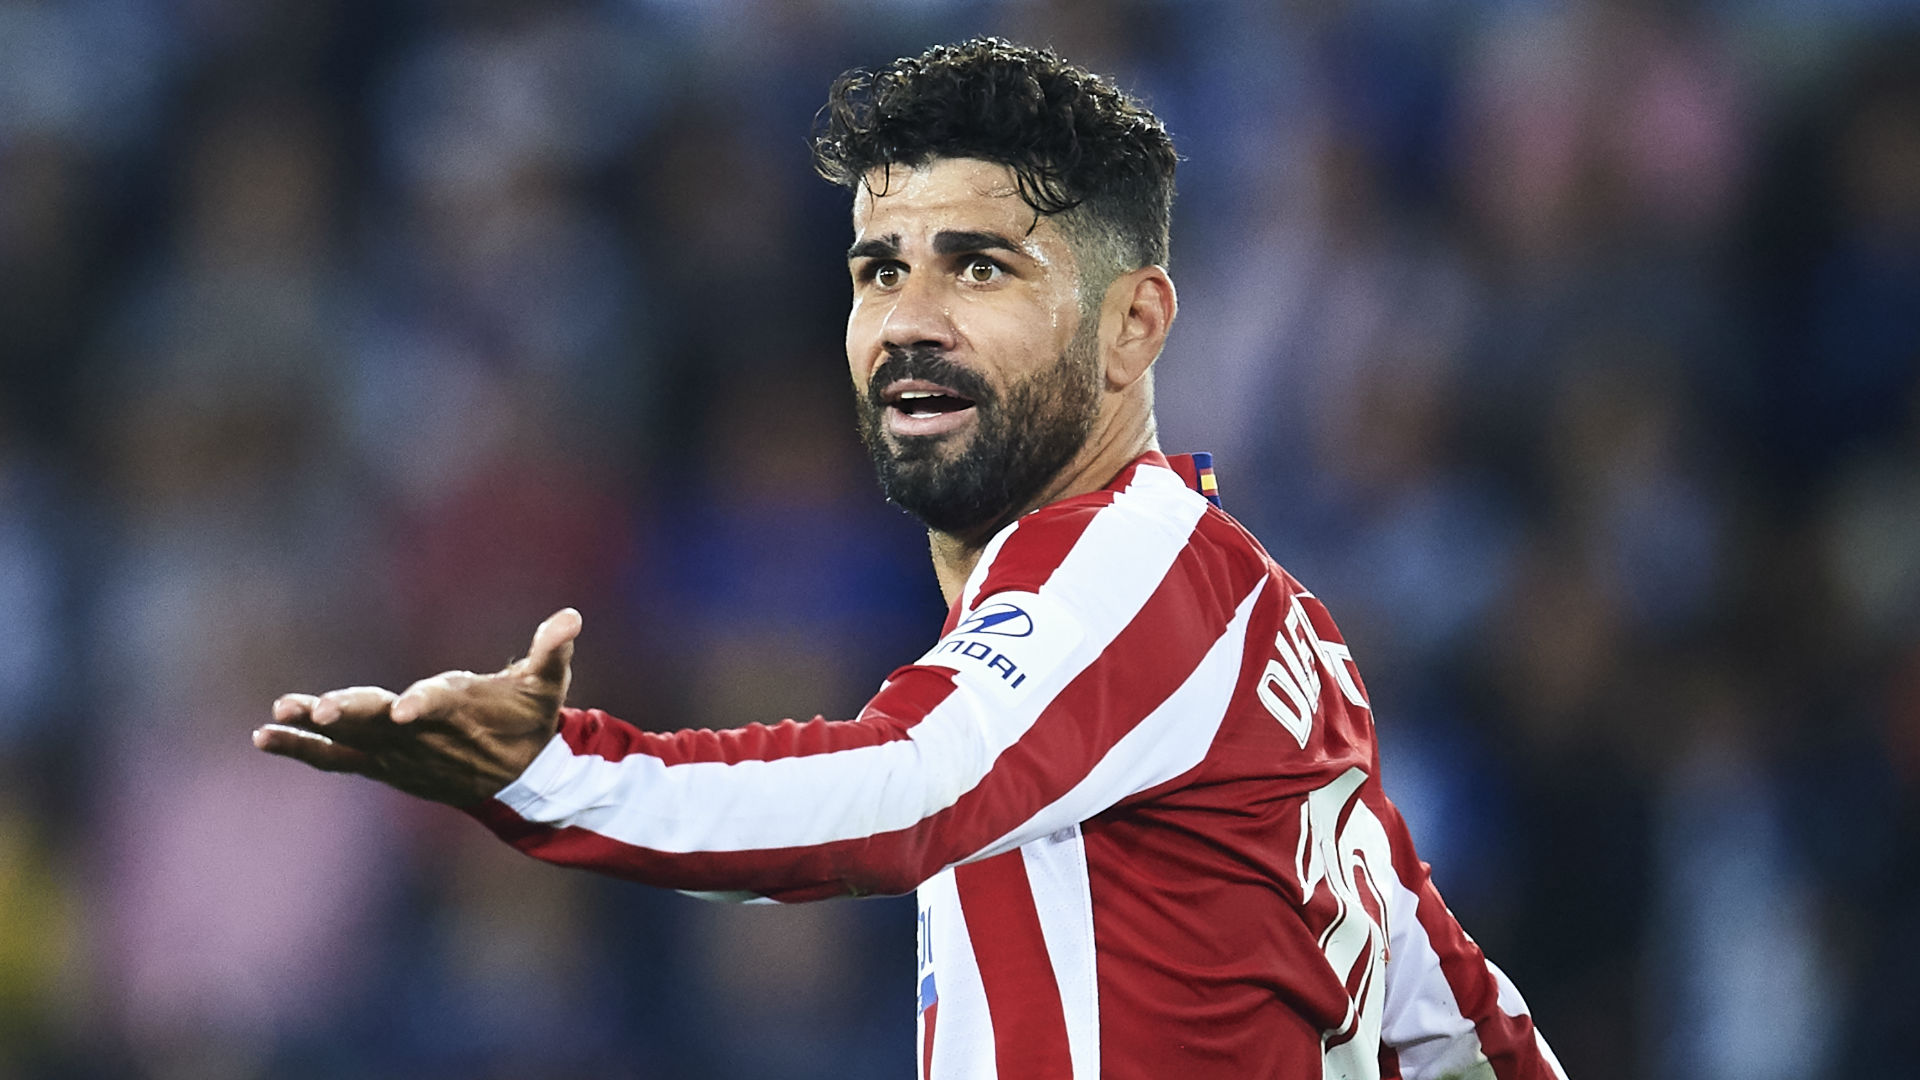 Atletico Madrid star Diego Costa ruled out for three months